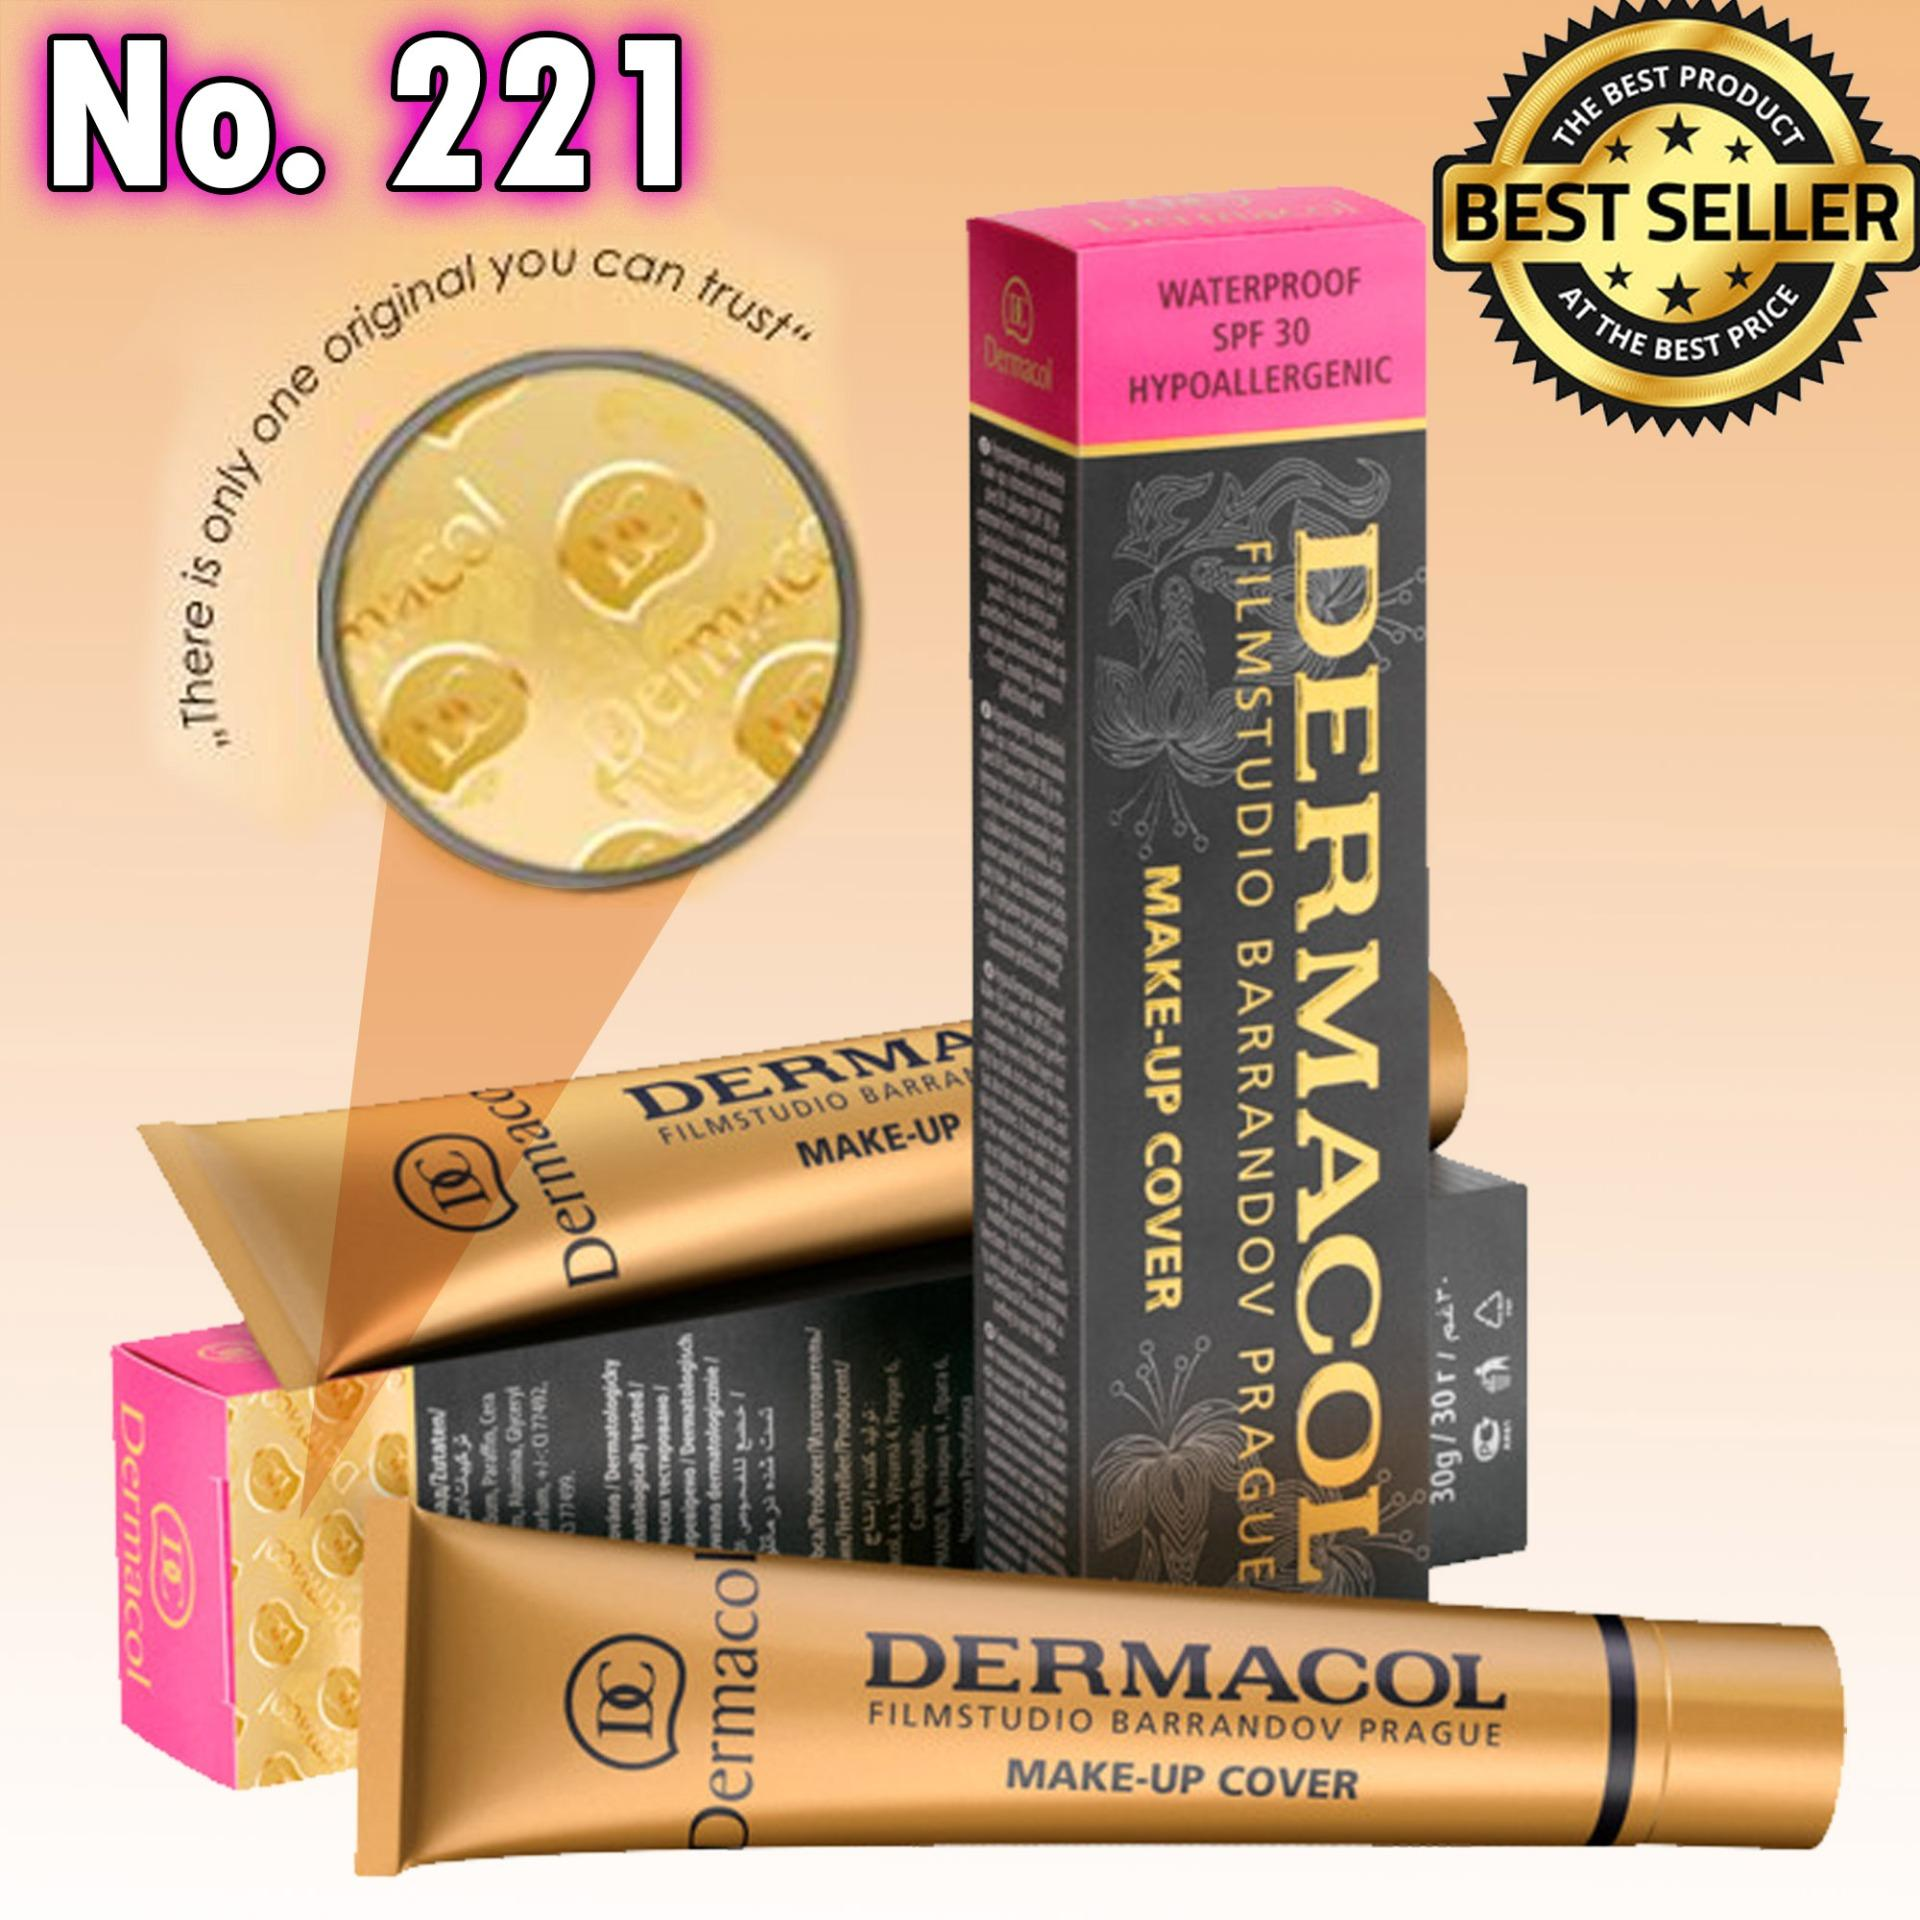 Dermacol Make-Up Cover Foundation Shades No.221 Philippines